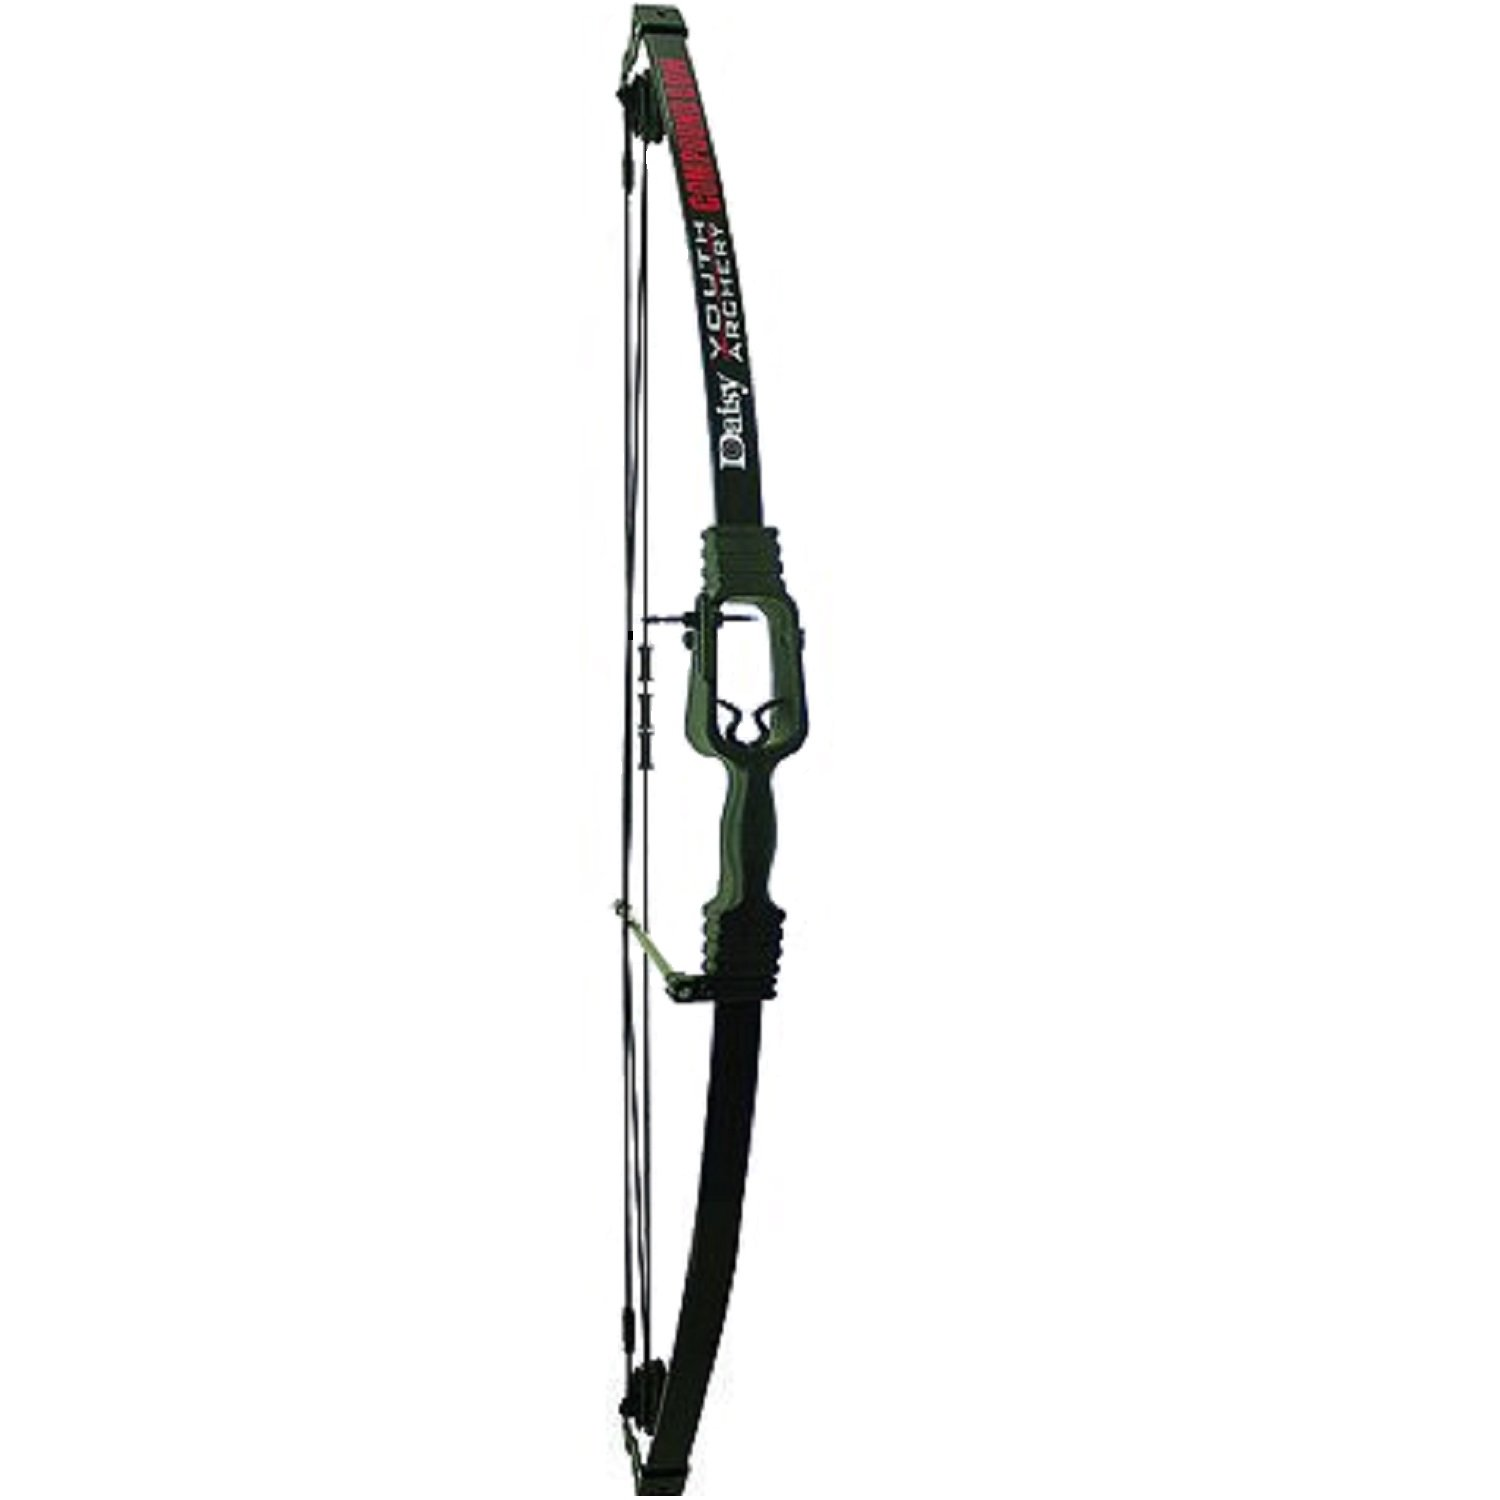 Daisy Youth Archery Compound Bow, Black, Left/Right Hand